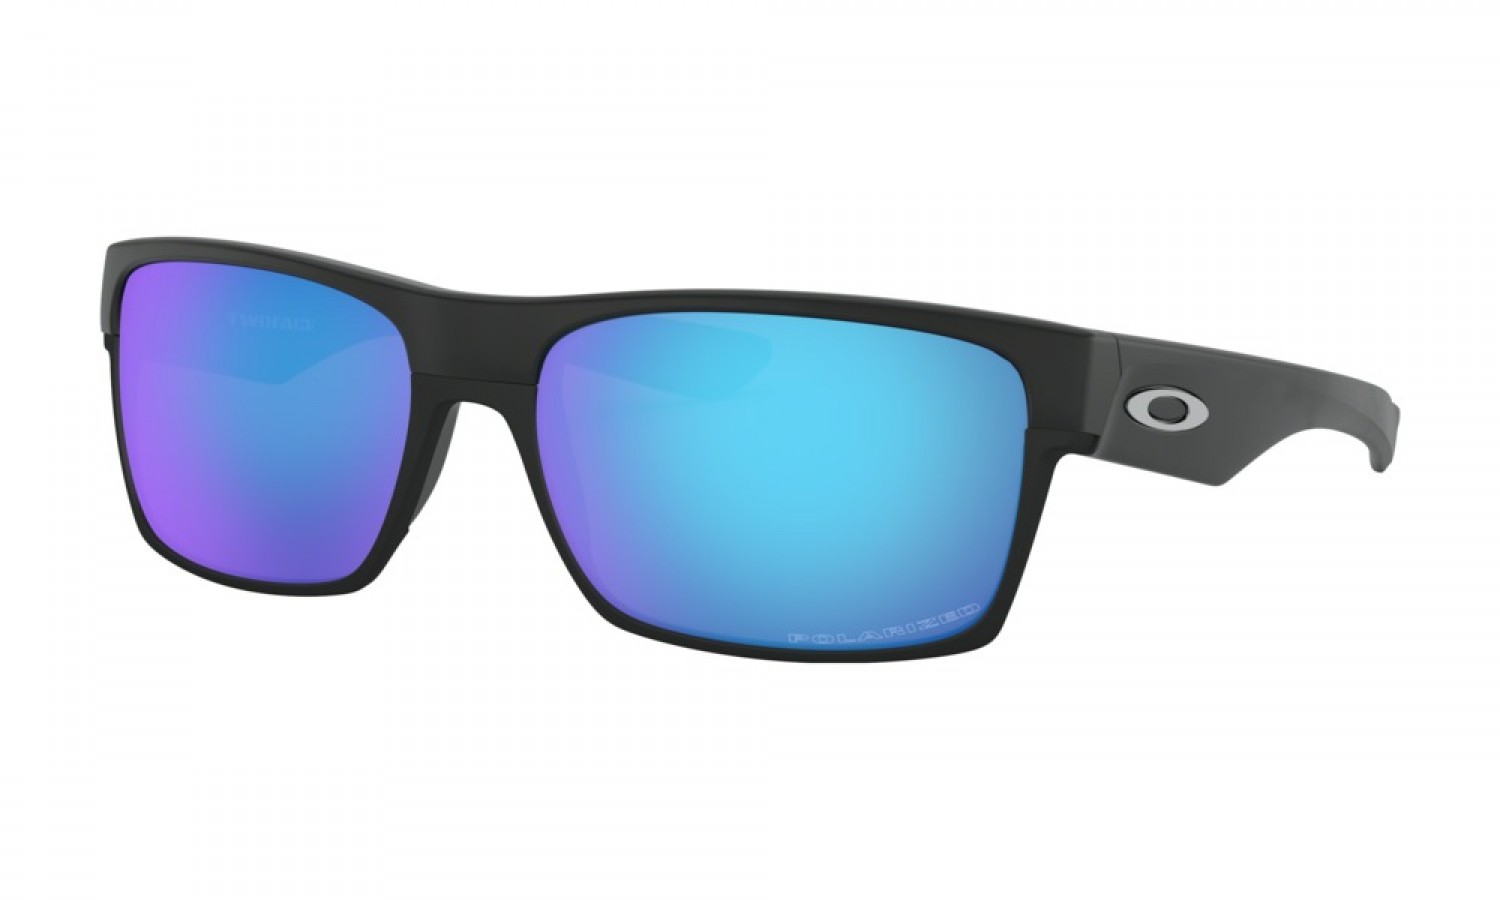 a9c4a5774c Oakley TwoFace Sunglasses (Prescription Available)